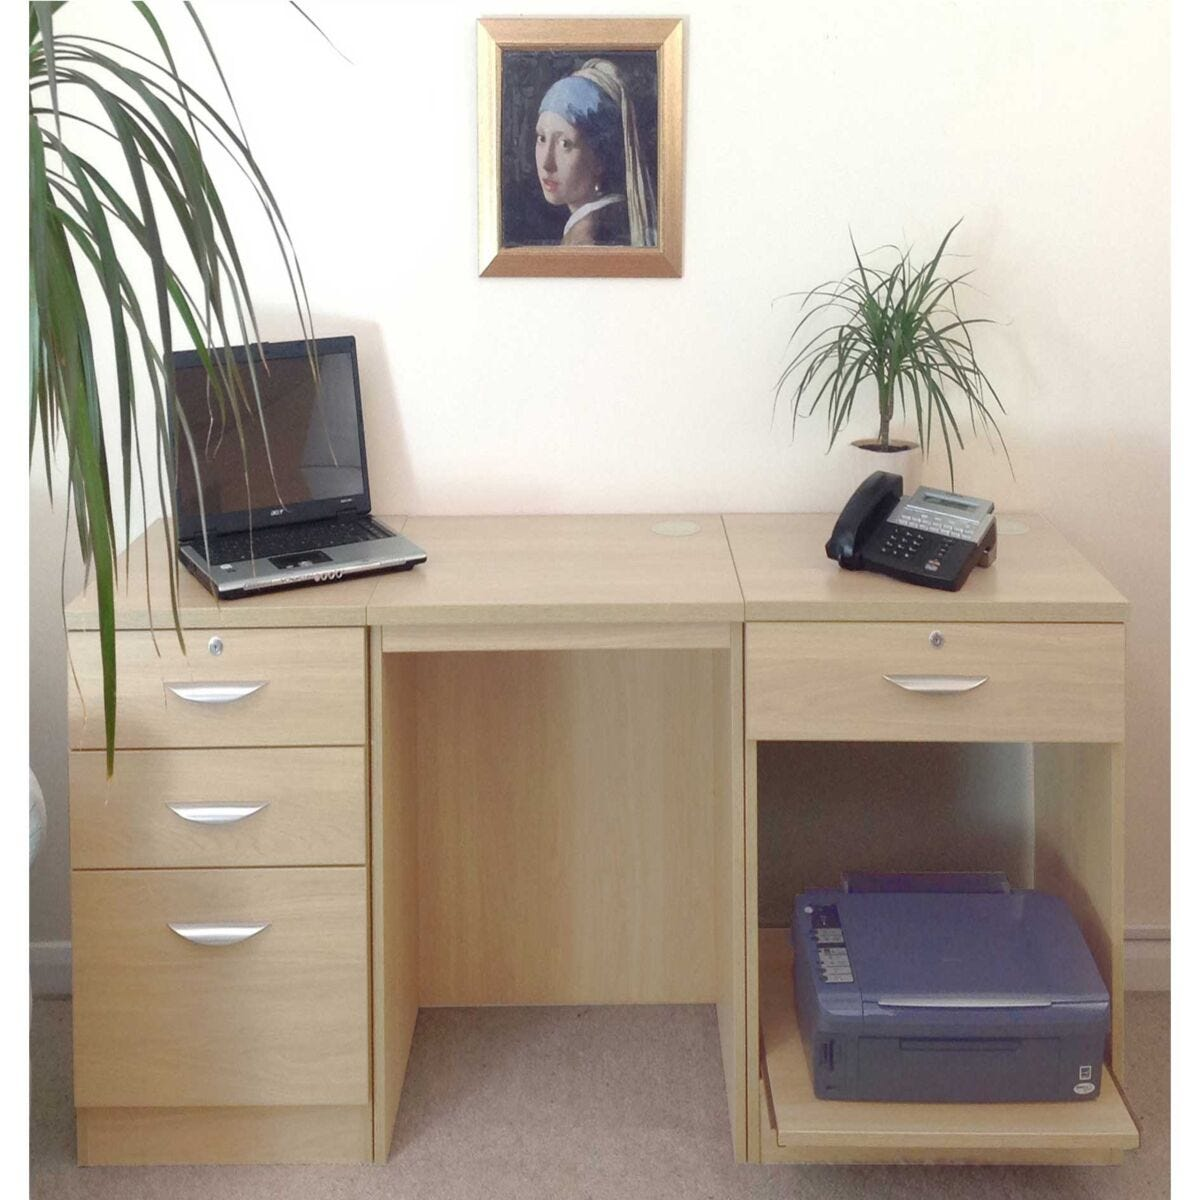 R White Home Office Furniture Desk Set With Drawers And Storage